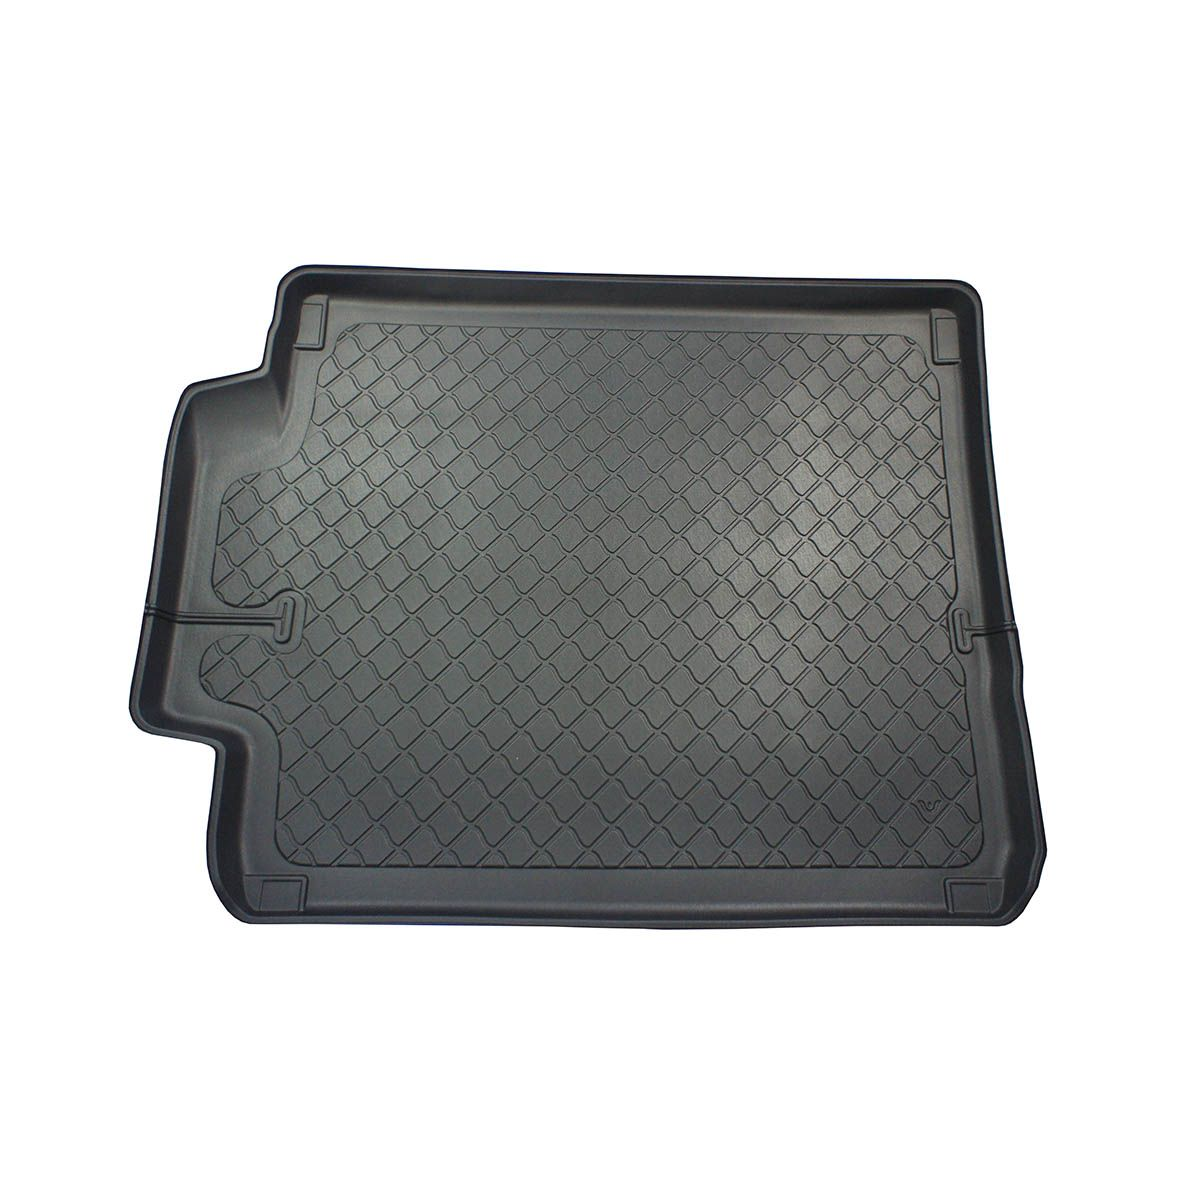 Land Rover Discovery 5 (No ICE)(2017 onwards) Moulded Boot Mat product image